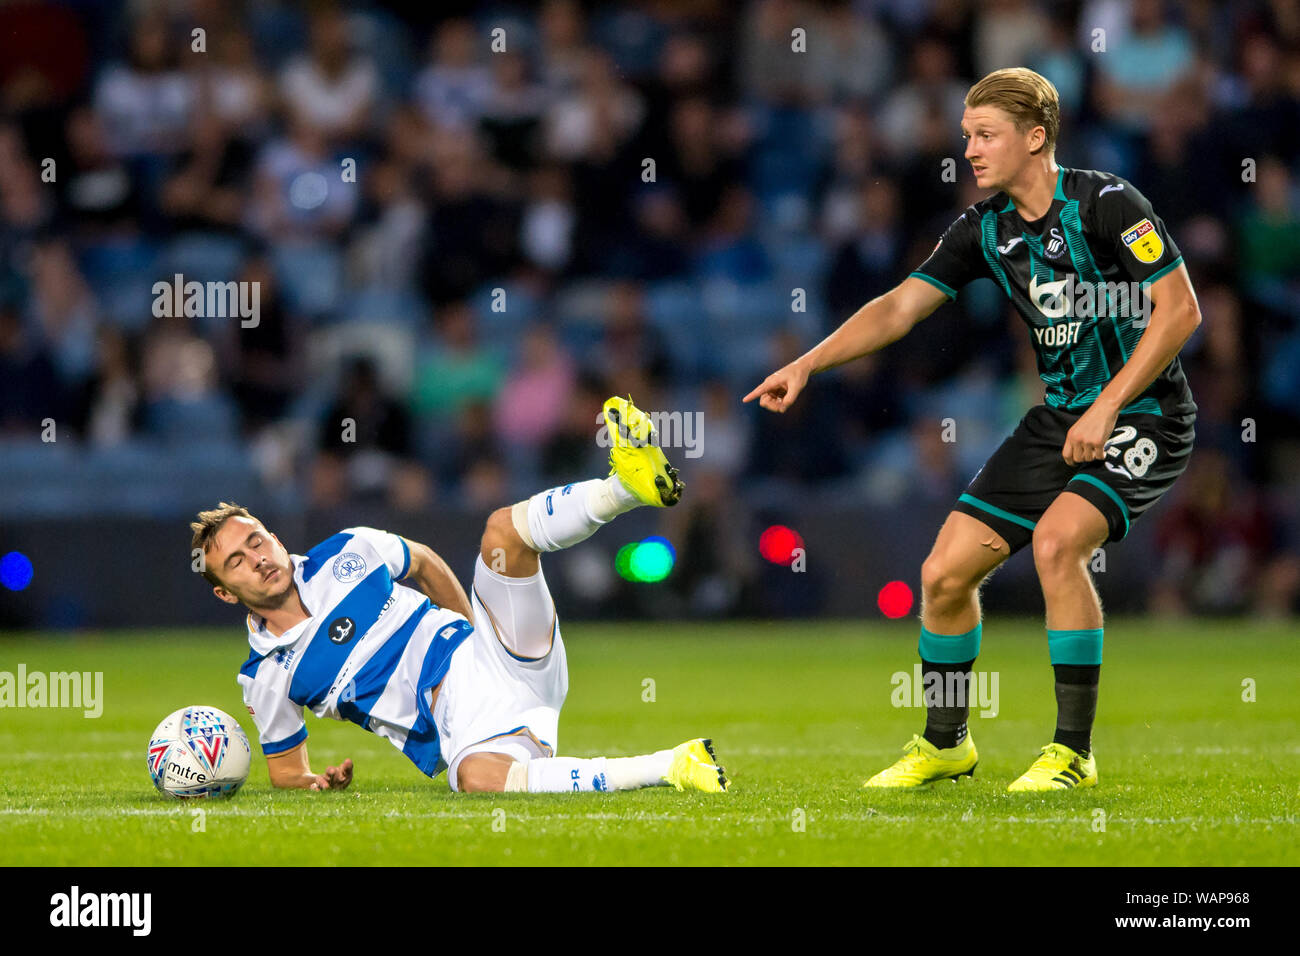 London, UK. 21st Aug, 2019. George Byers of Swansea City and Grant Hall of Queens Park Rangers during the EFL Sky Bet Championship match between Queens Park Rangers and Swansea City at The Kiyan Prince Foundation Stadium, London, England on 21 August 2019. Photo by Salvio Calabrese. Editorial use only, license required for commercial use. No use in betting, games or a single club/league/player publications. Credit: UK Sports Pics Ltd/Alamy Live News Stock Photo